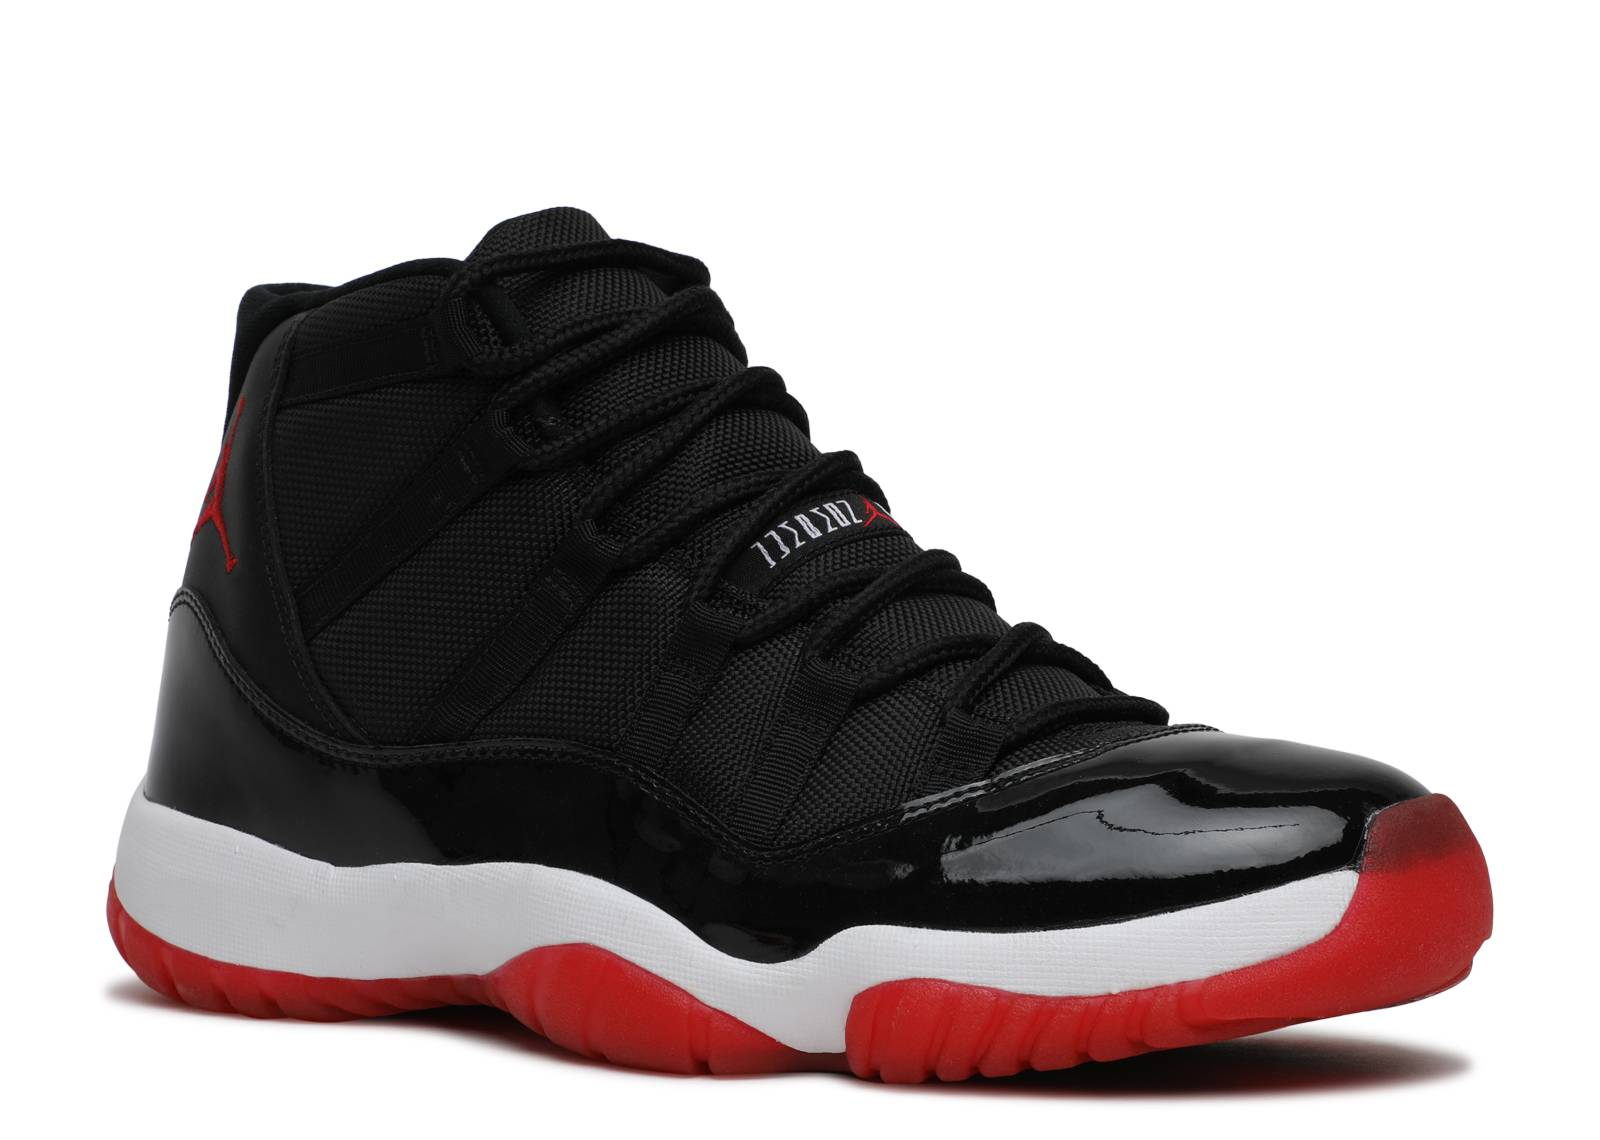 wholesale dealer fbc13 a2a60 Air Jordan 11 Retro